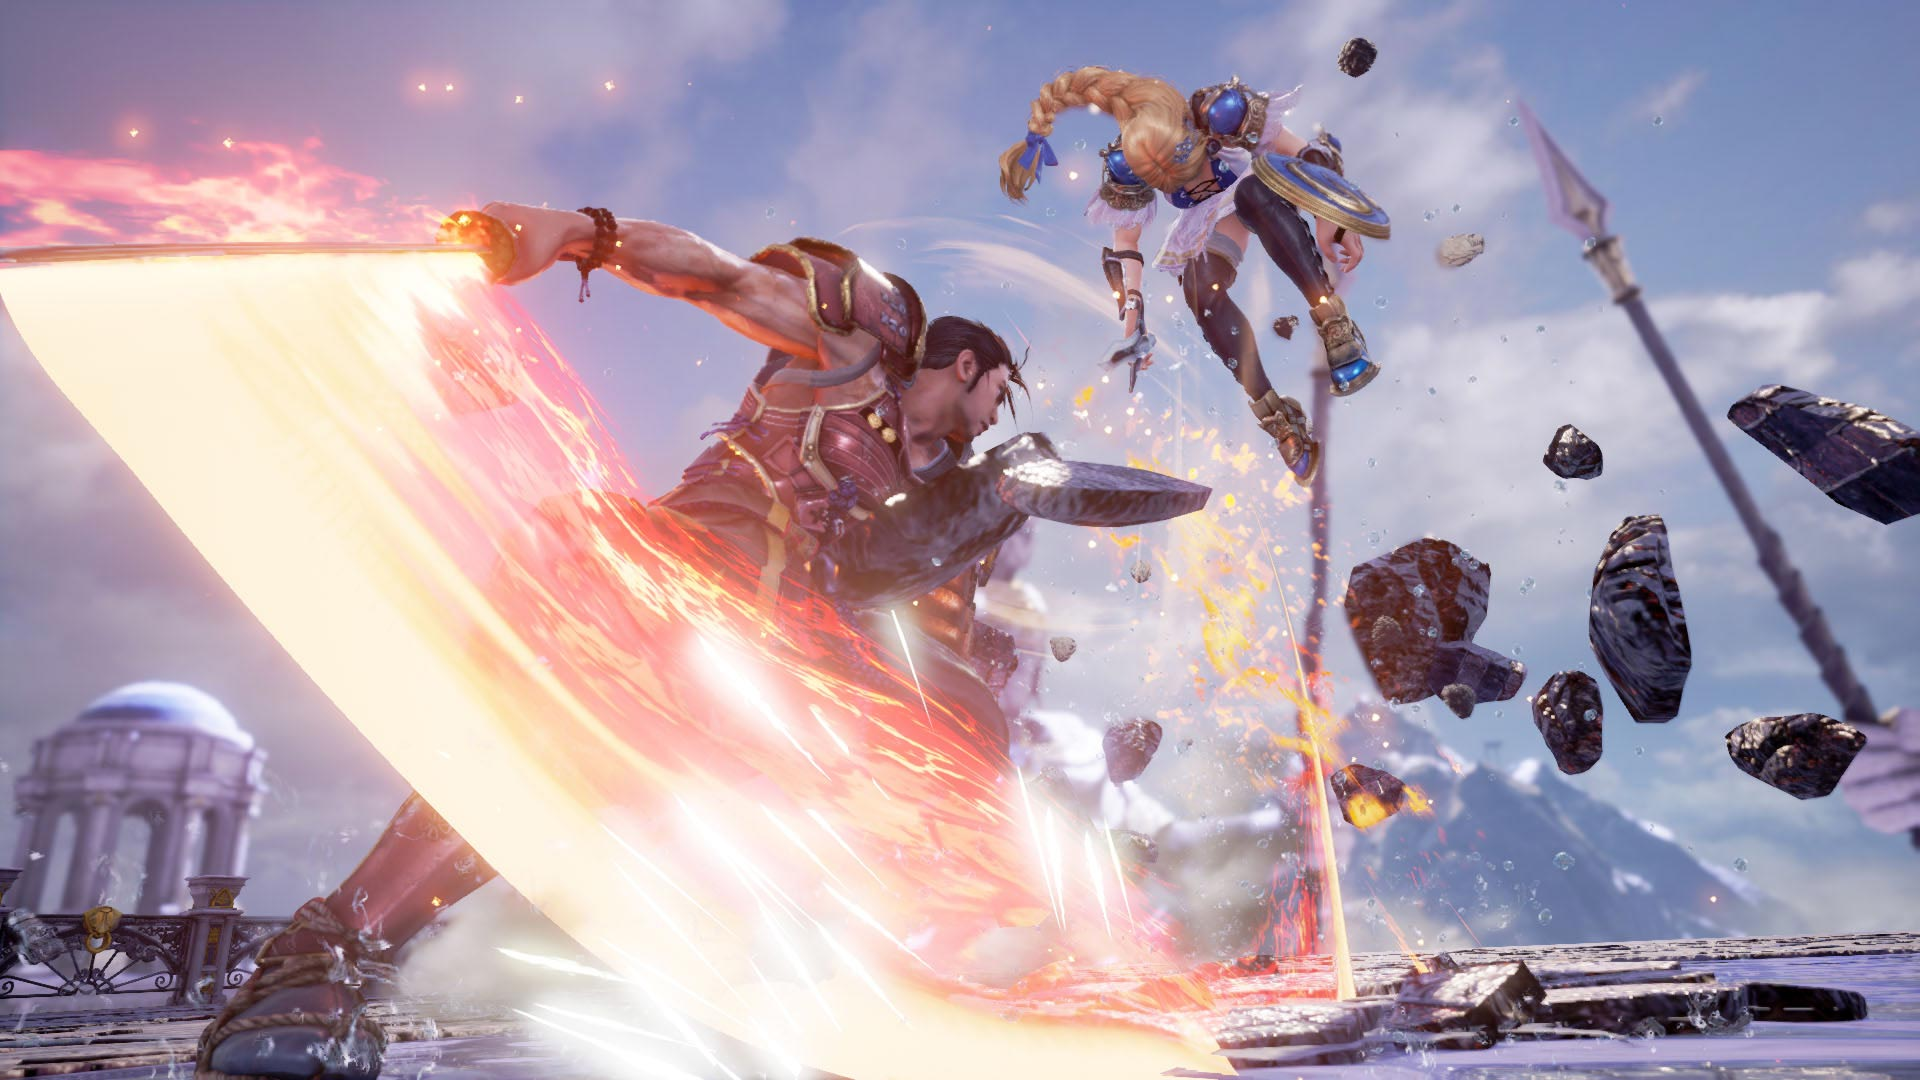 Soul Calibur 6 screeshots 9 out of 16 image gallery